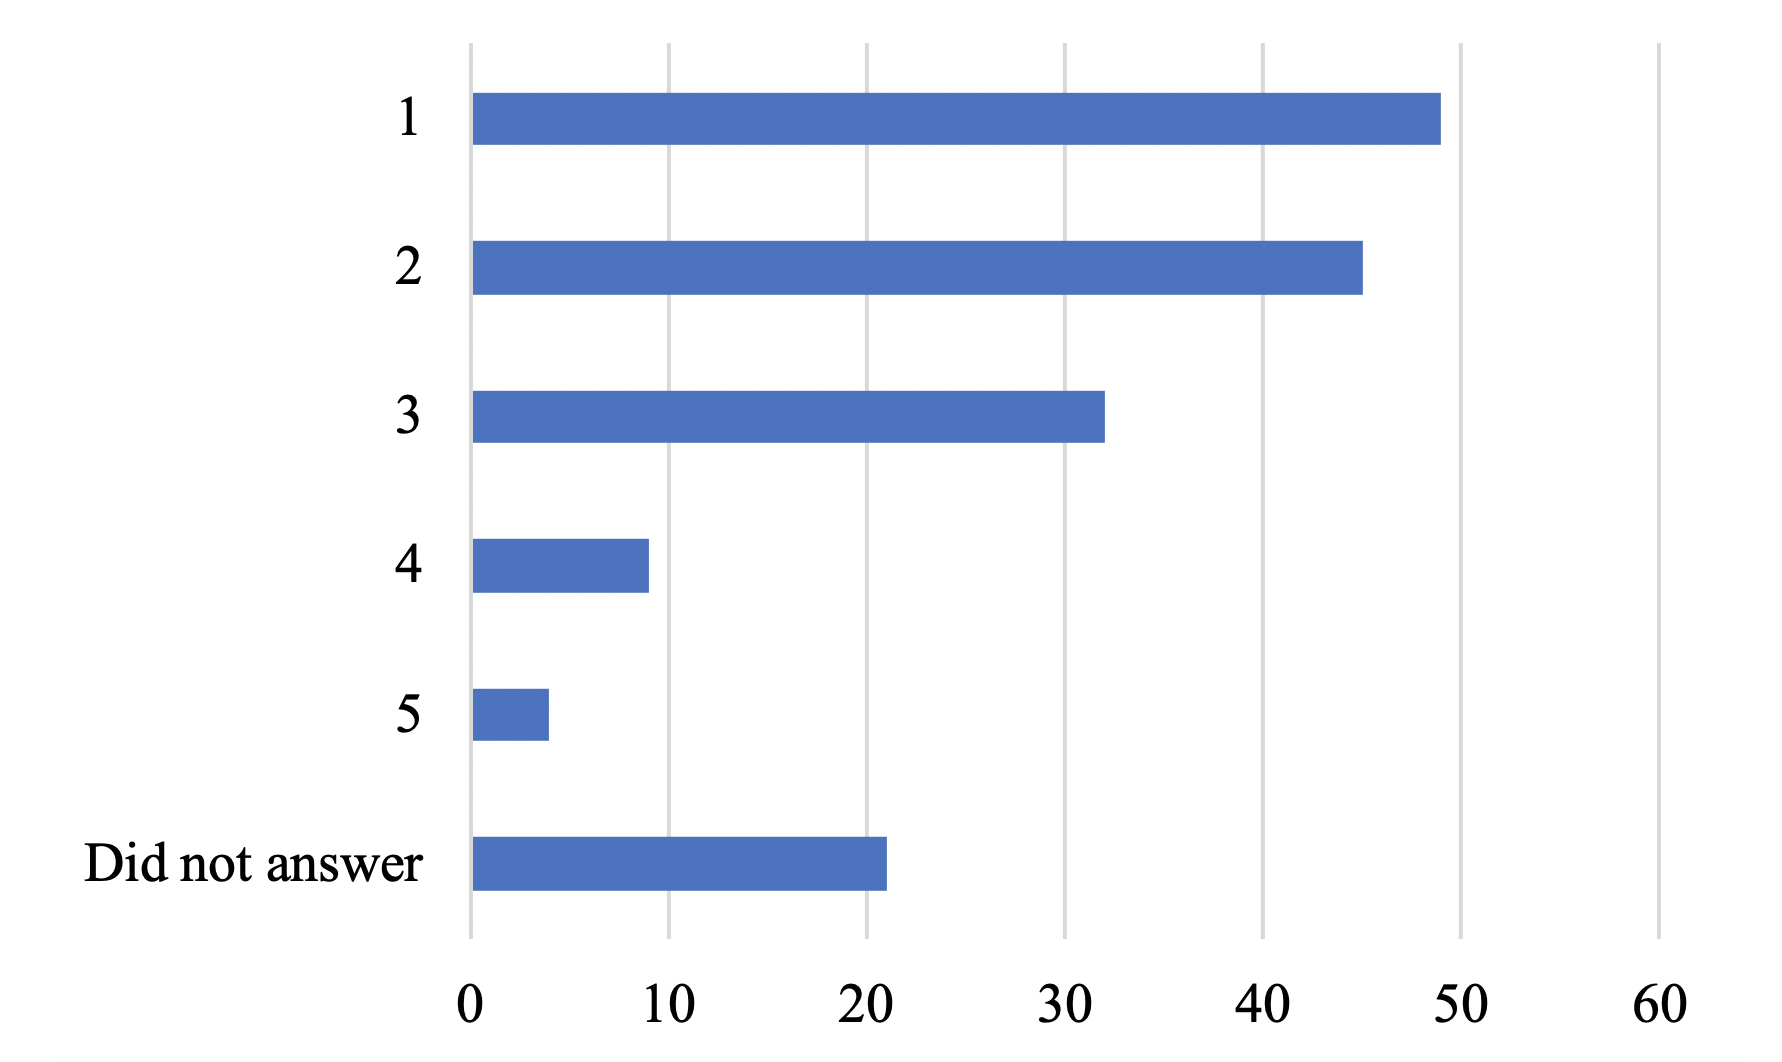 Figure 2. Survey responses related to the perceived impact of museum donations and giftshop sales since the pandemic began. 1 indicates individuals who feel finances have beenheavily impacted, and 5 indicates those who feel finances have not been impacted at all.